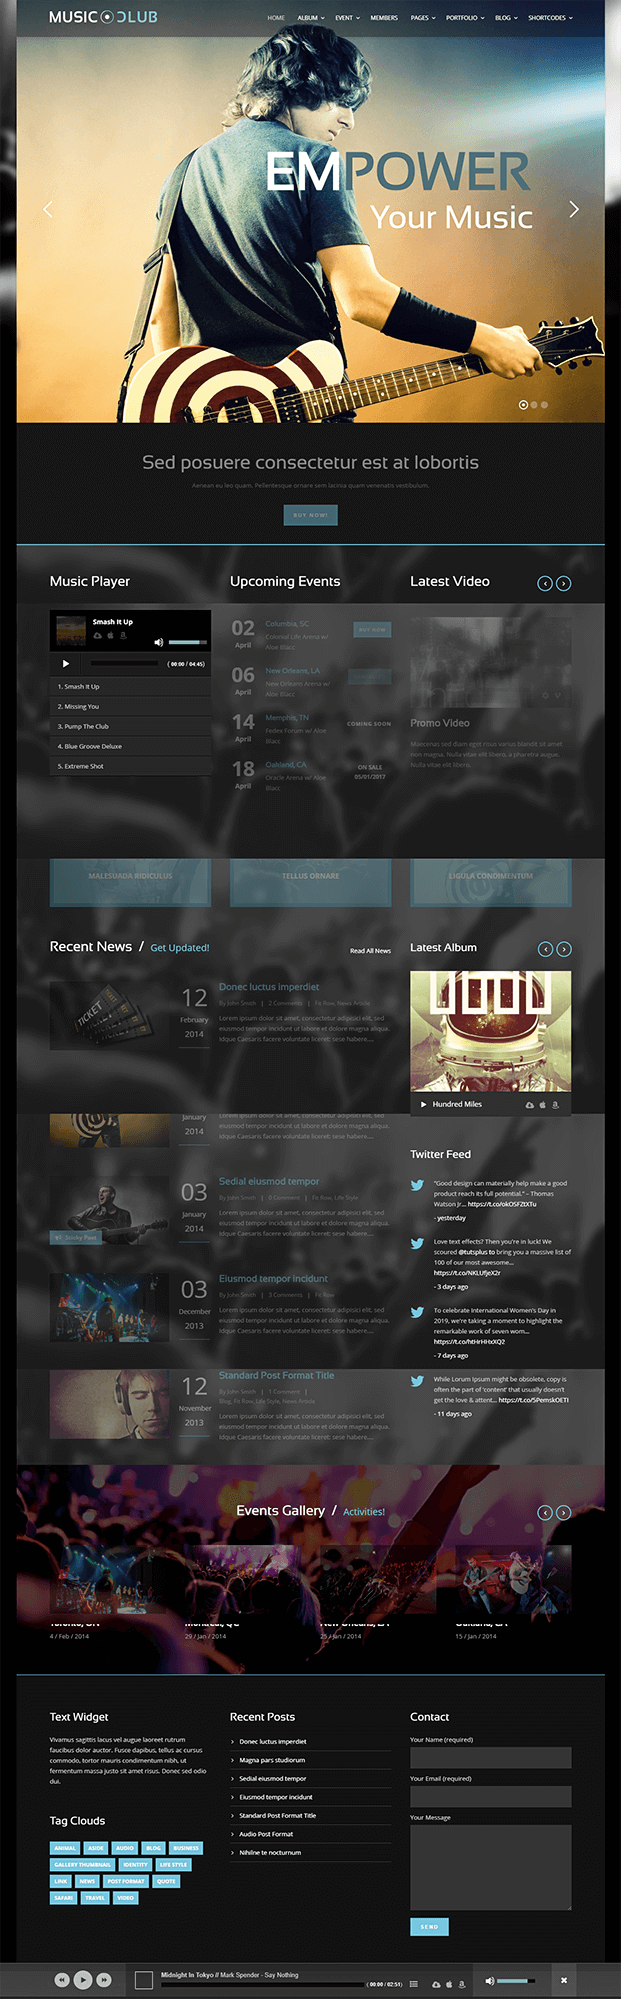 Home - Music Club WordPress Theme